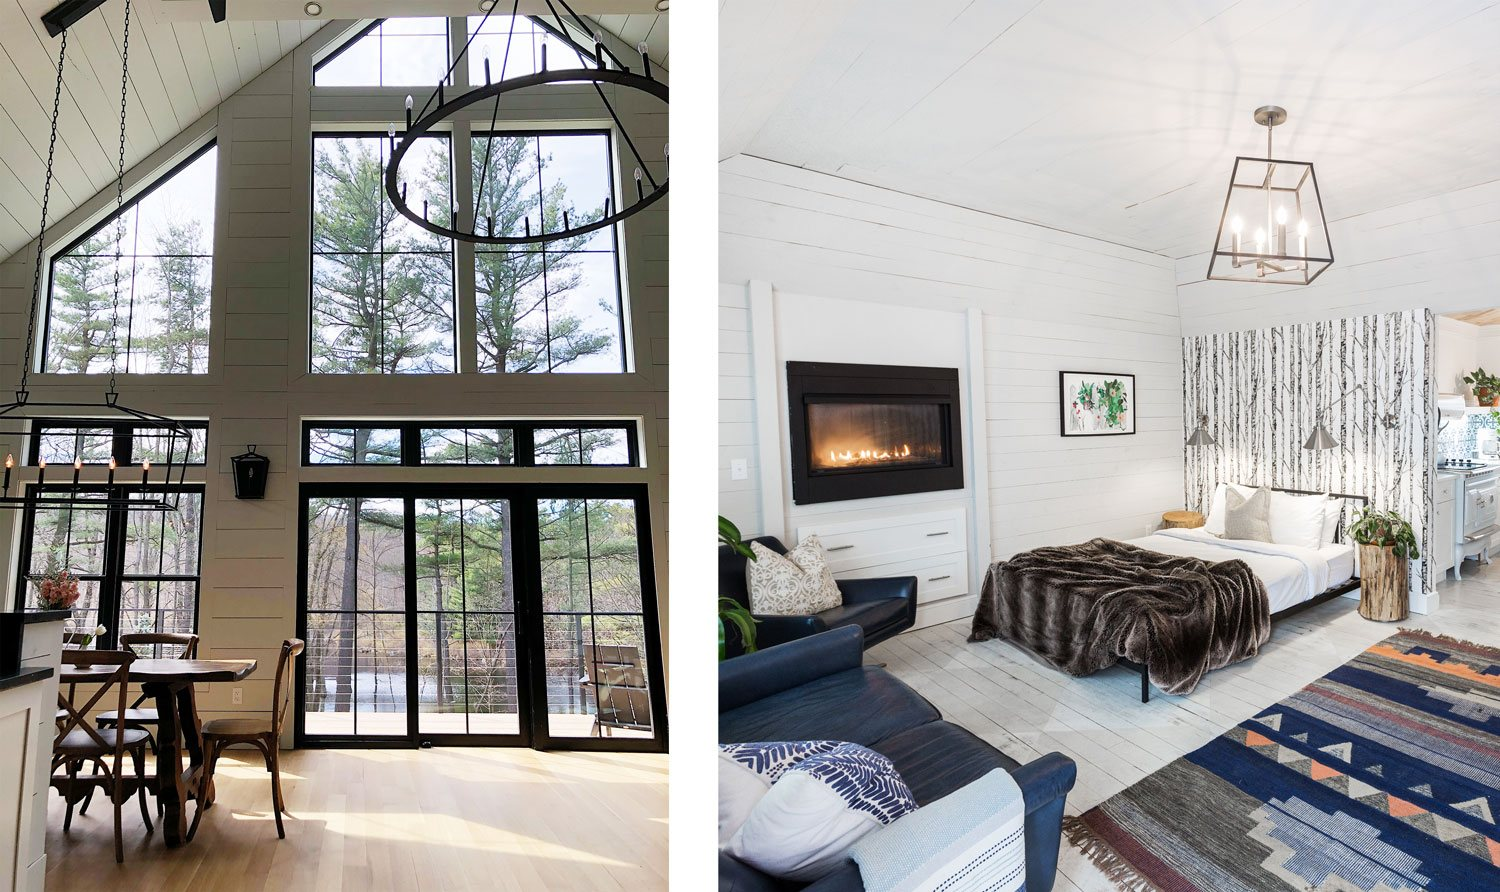 A brand-new farmhouse at Cedar Lakes Estate, as well as one of the property's guest rooms.